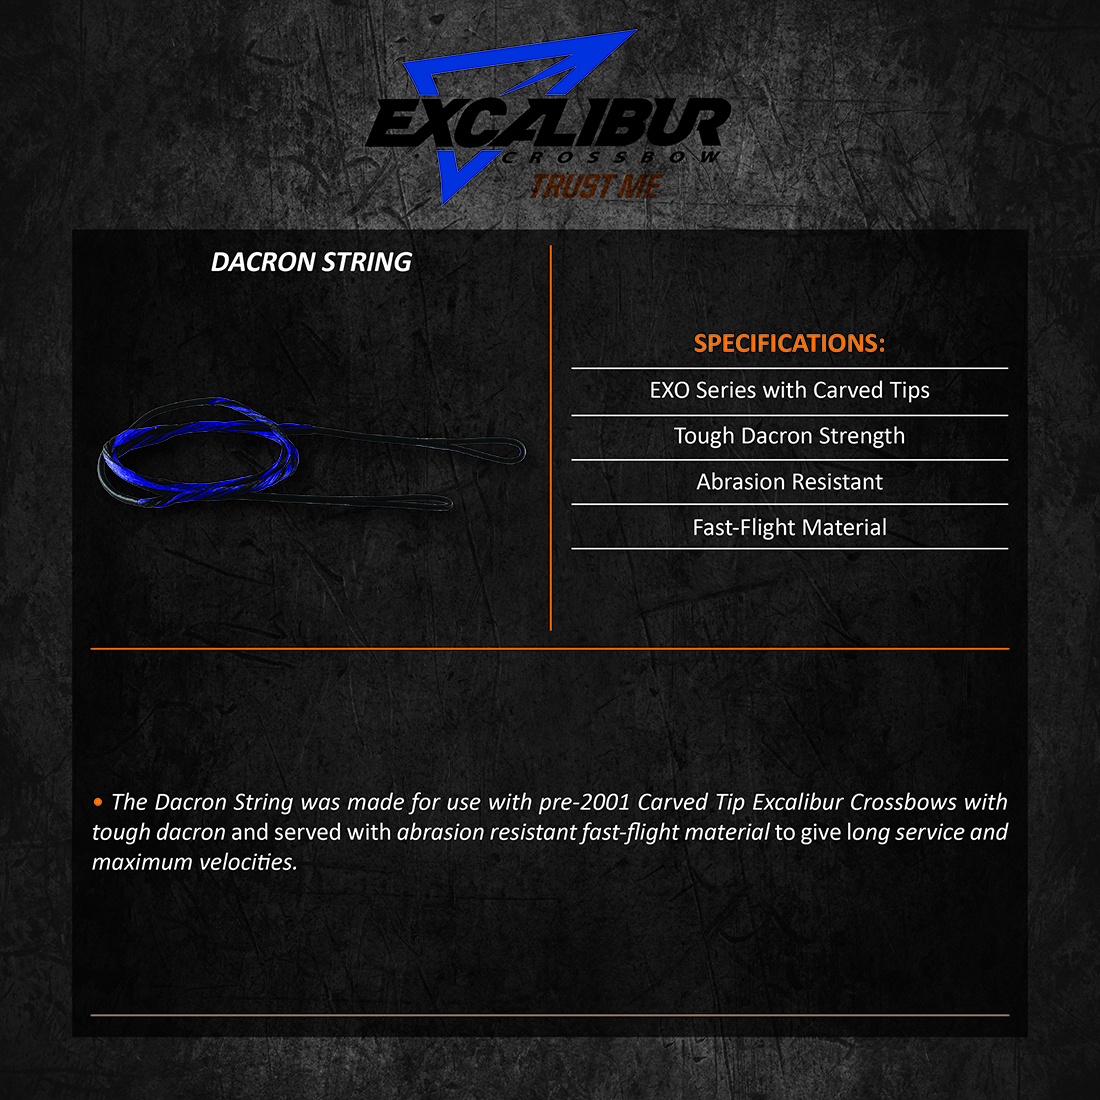 Excalibur_Dacron_Strings_Product_Description